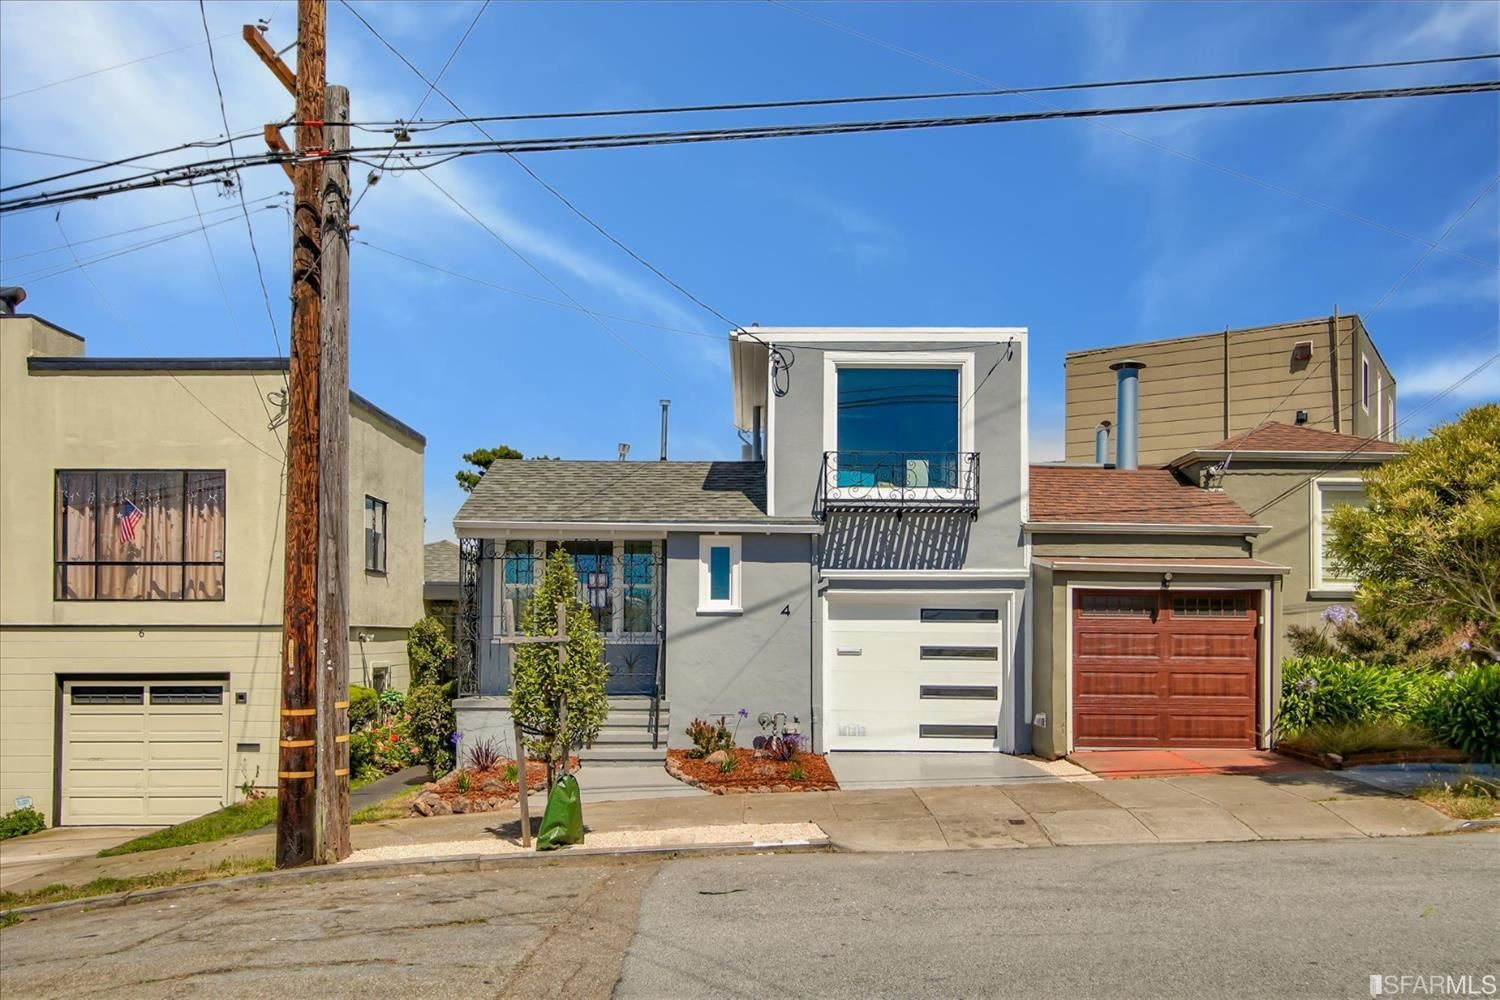 4 Lee Avenue, San Francisco, CA 94112 - #: 499313